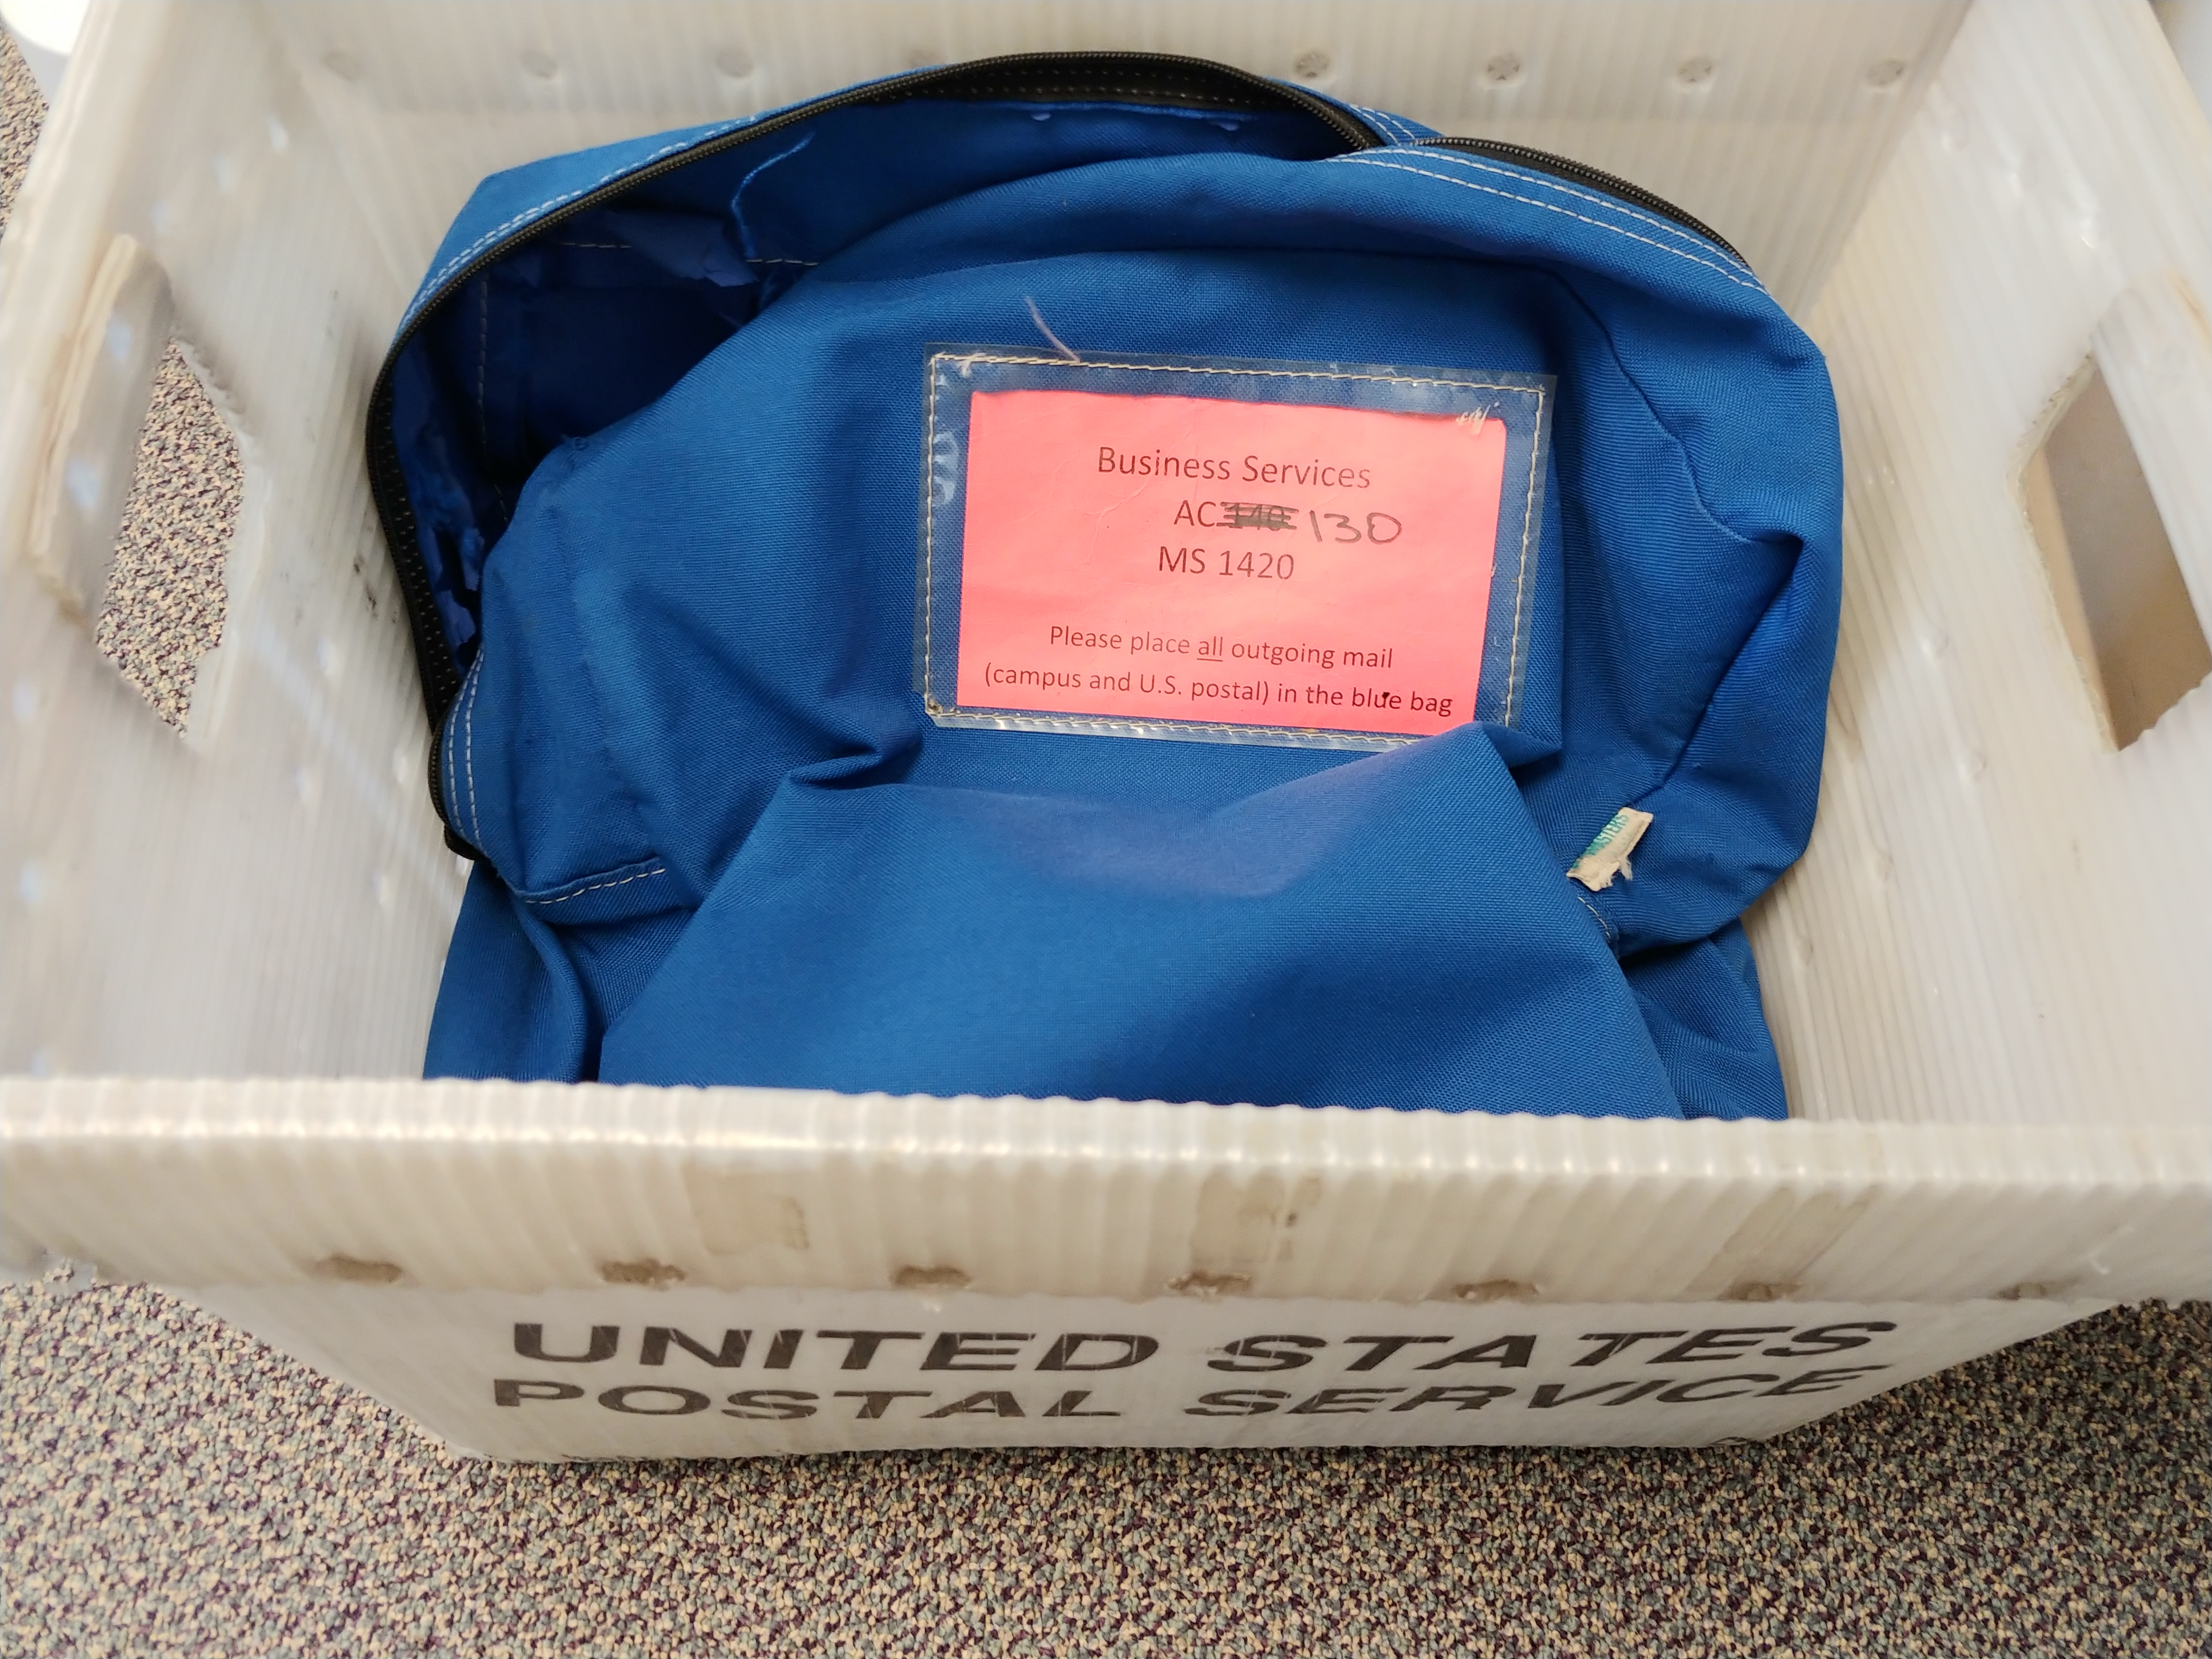 Example of the blue bag for campus mail collection